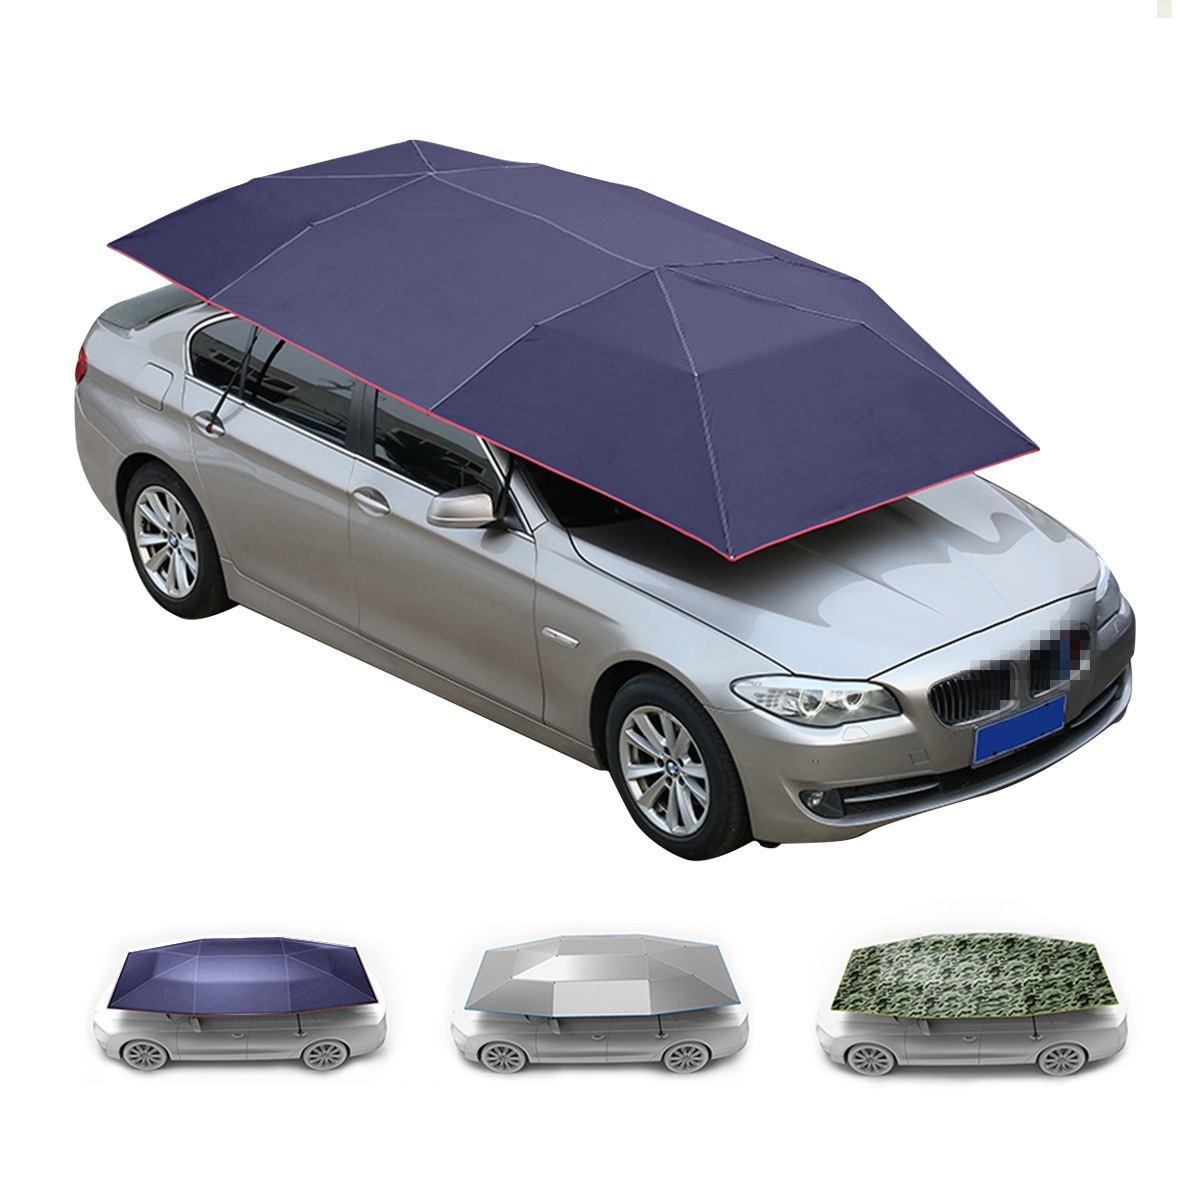 450x230 400x210cm Car Tent Roof Cover Umbrella Oxford Cloth Sun Shade Shelter Outdoor UV Protection Without Skeleton No Bracket(China)